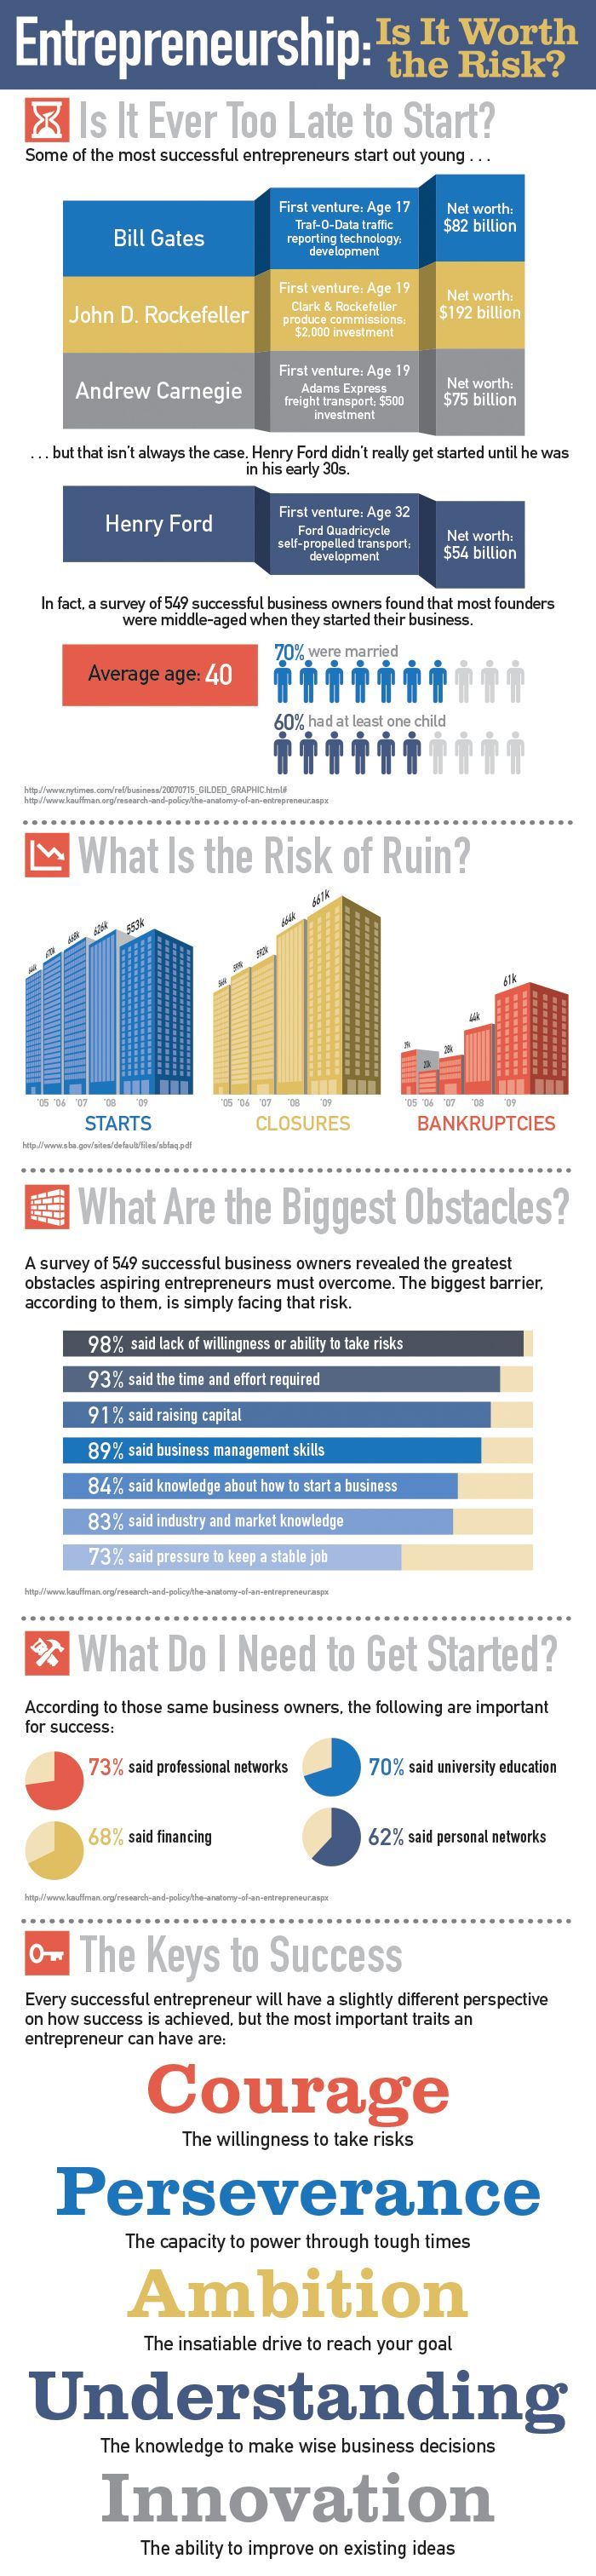 Never too old to start?  Great Infographic for any entrepreneur to consider.  Weighing the Risks of Entrepreneurship